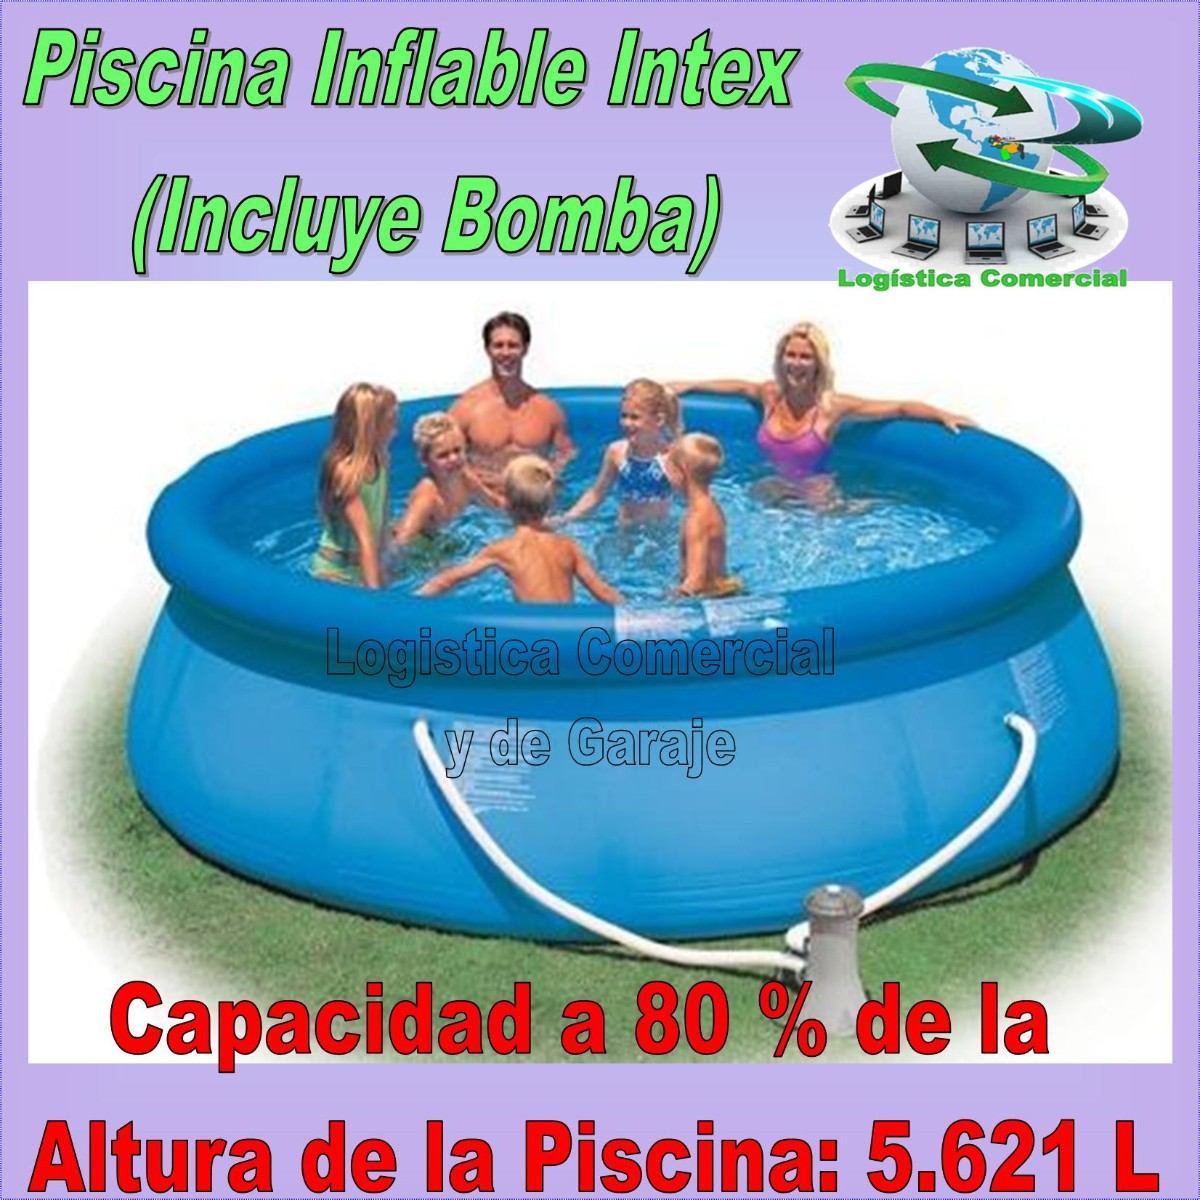 Piscina Intex Familiar Piscina Familiar Inflable 366 X 76cm 43 Bomba Filtrante